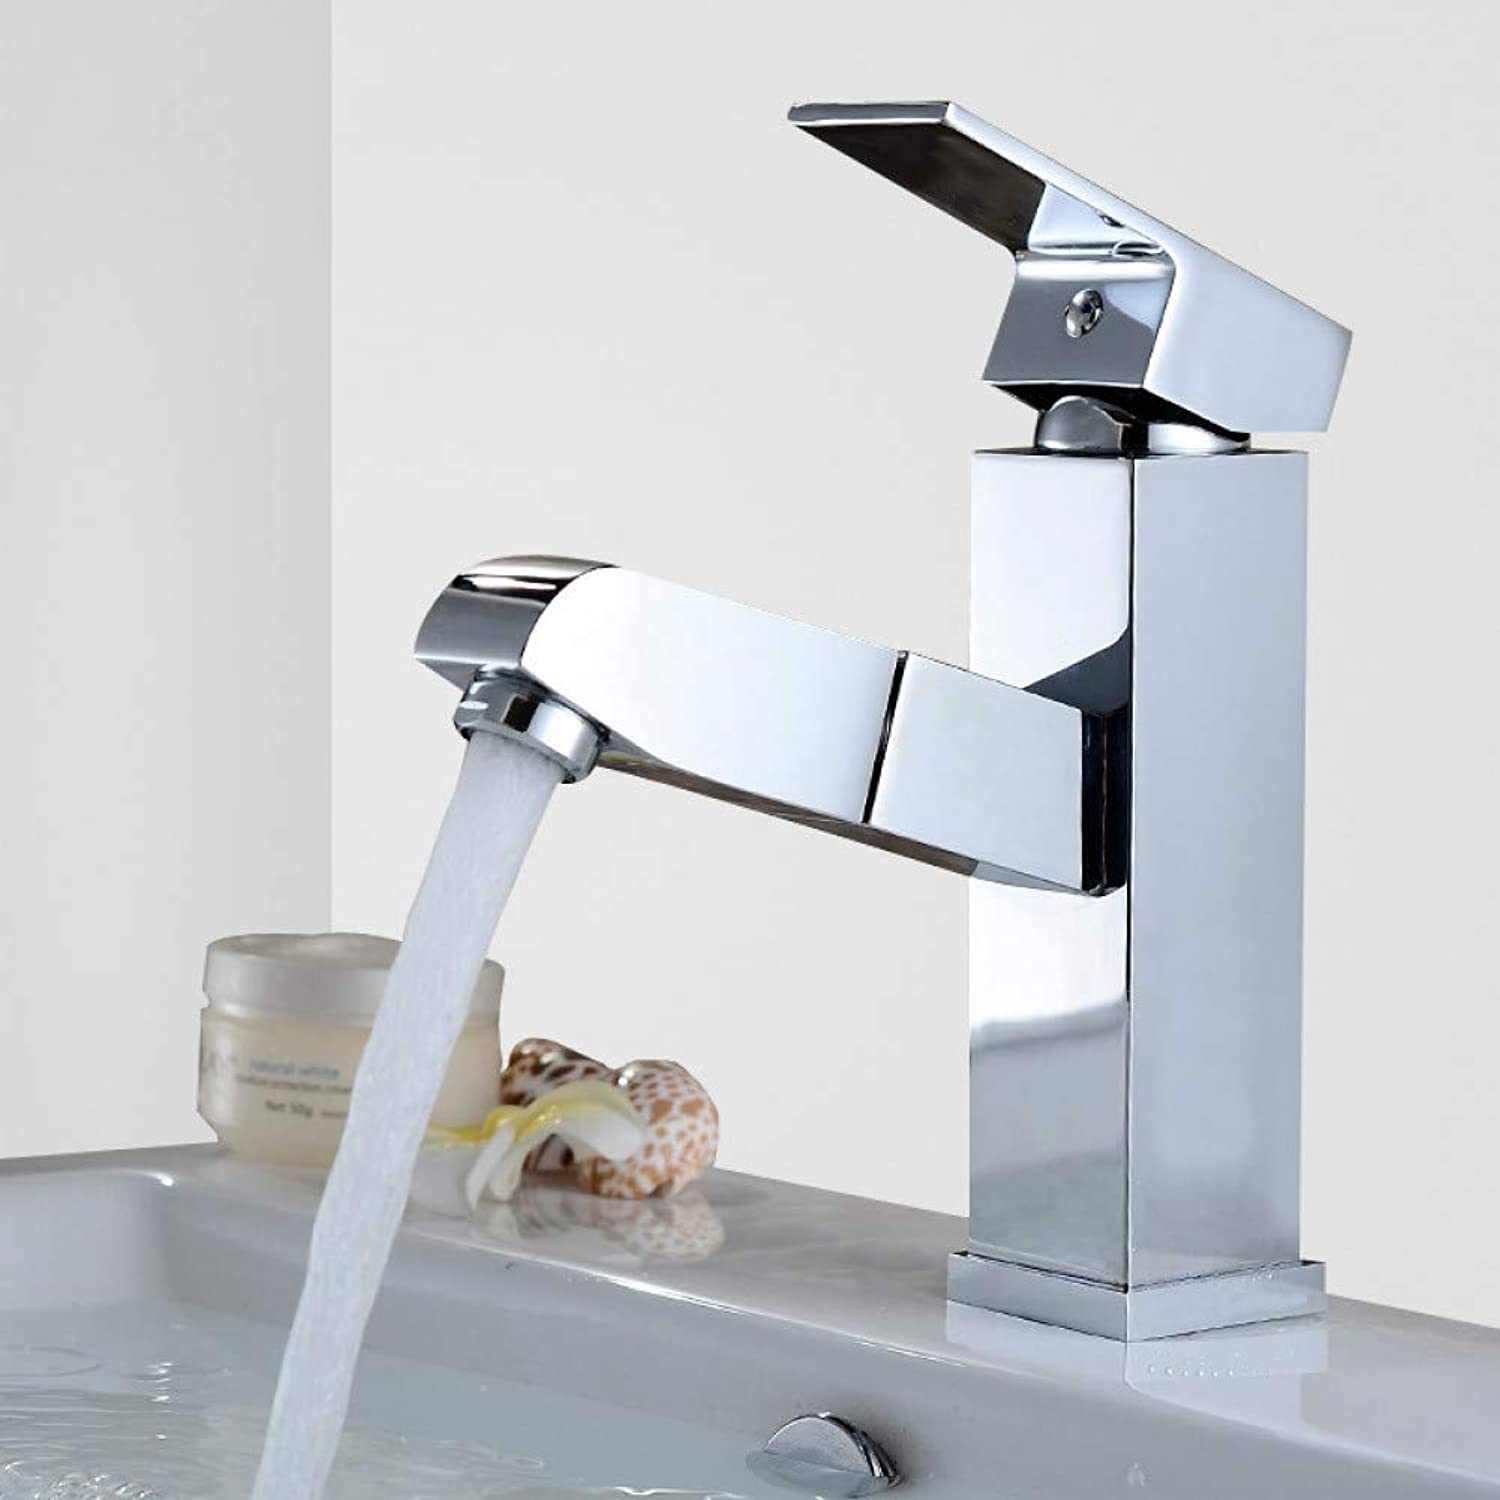 Bathroom Sink Taps YHSGY Pull Out Faucet Design Chrome Basin for Washing Hair and Face Polished Sink Mixer Tap Bathroom Faucet